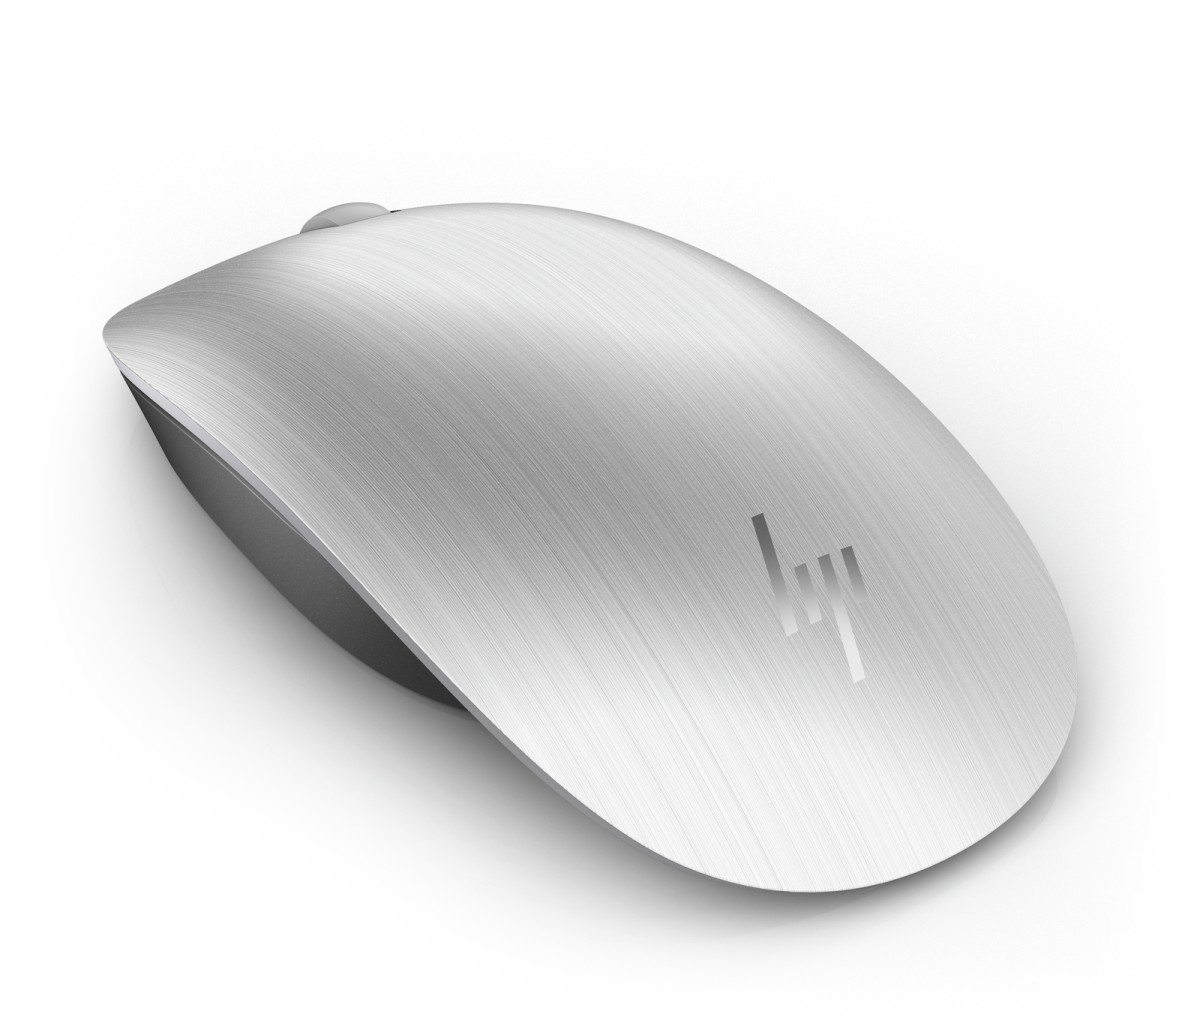 HP Spectre Bluetooth Mouse 500 (Pike Silver)